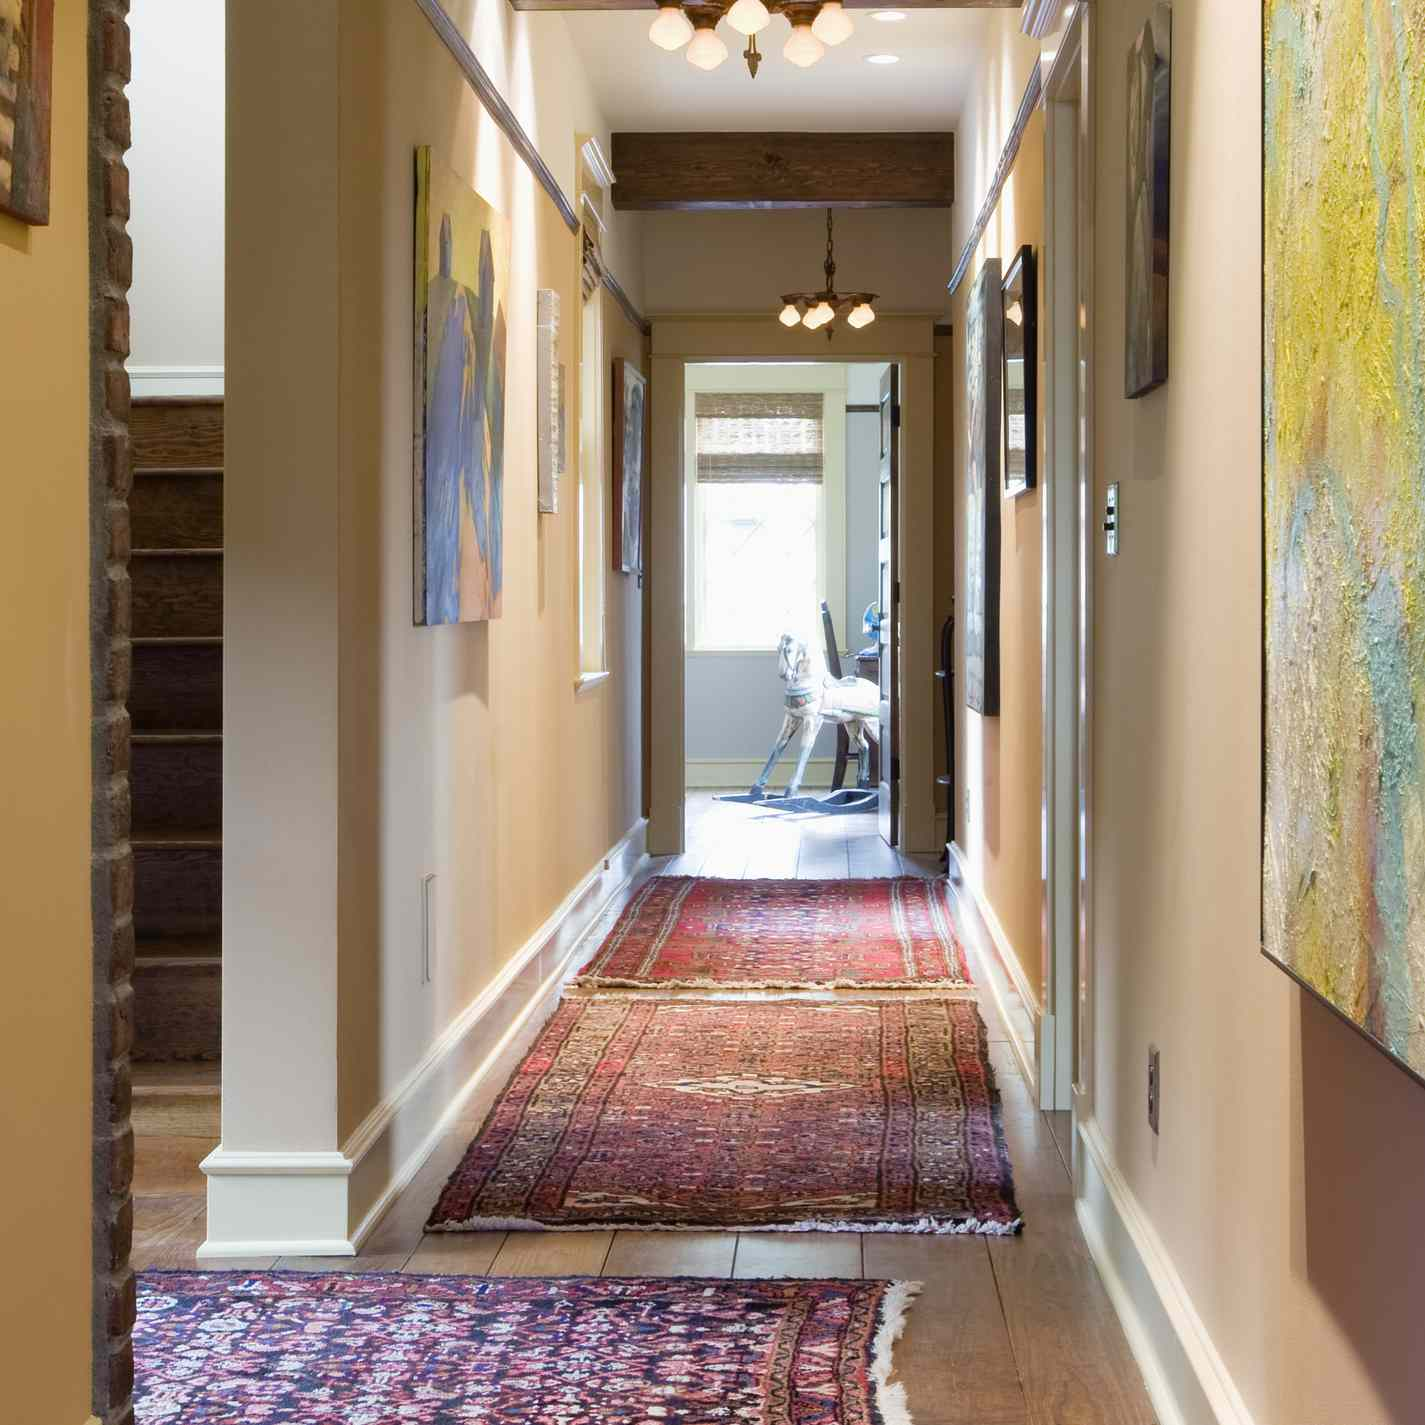 Hallway with rugs and artwork